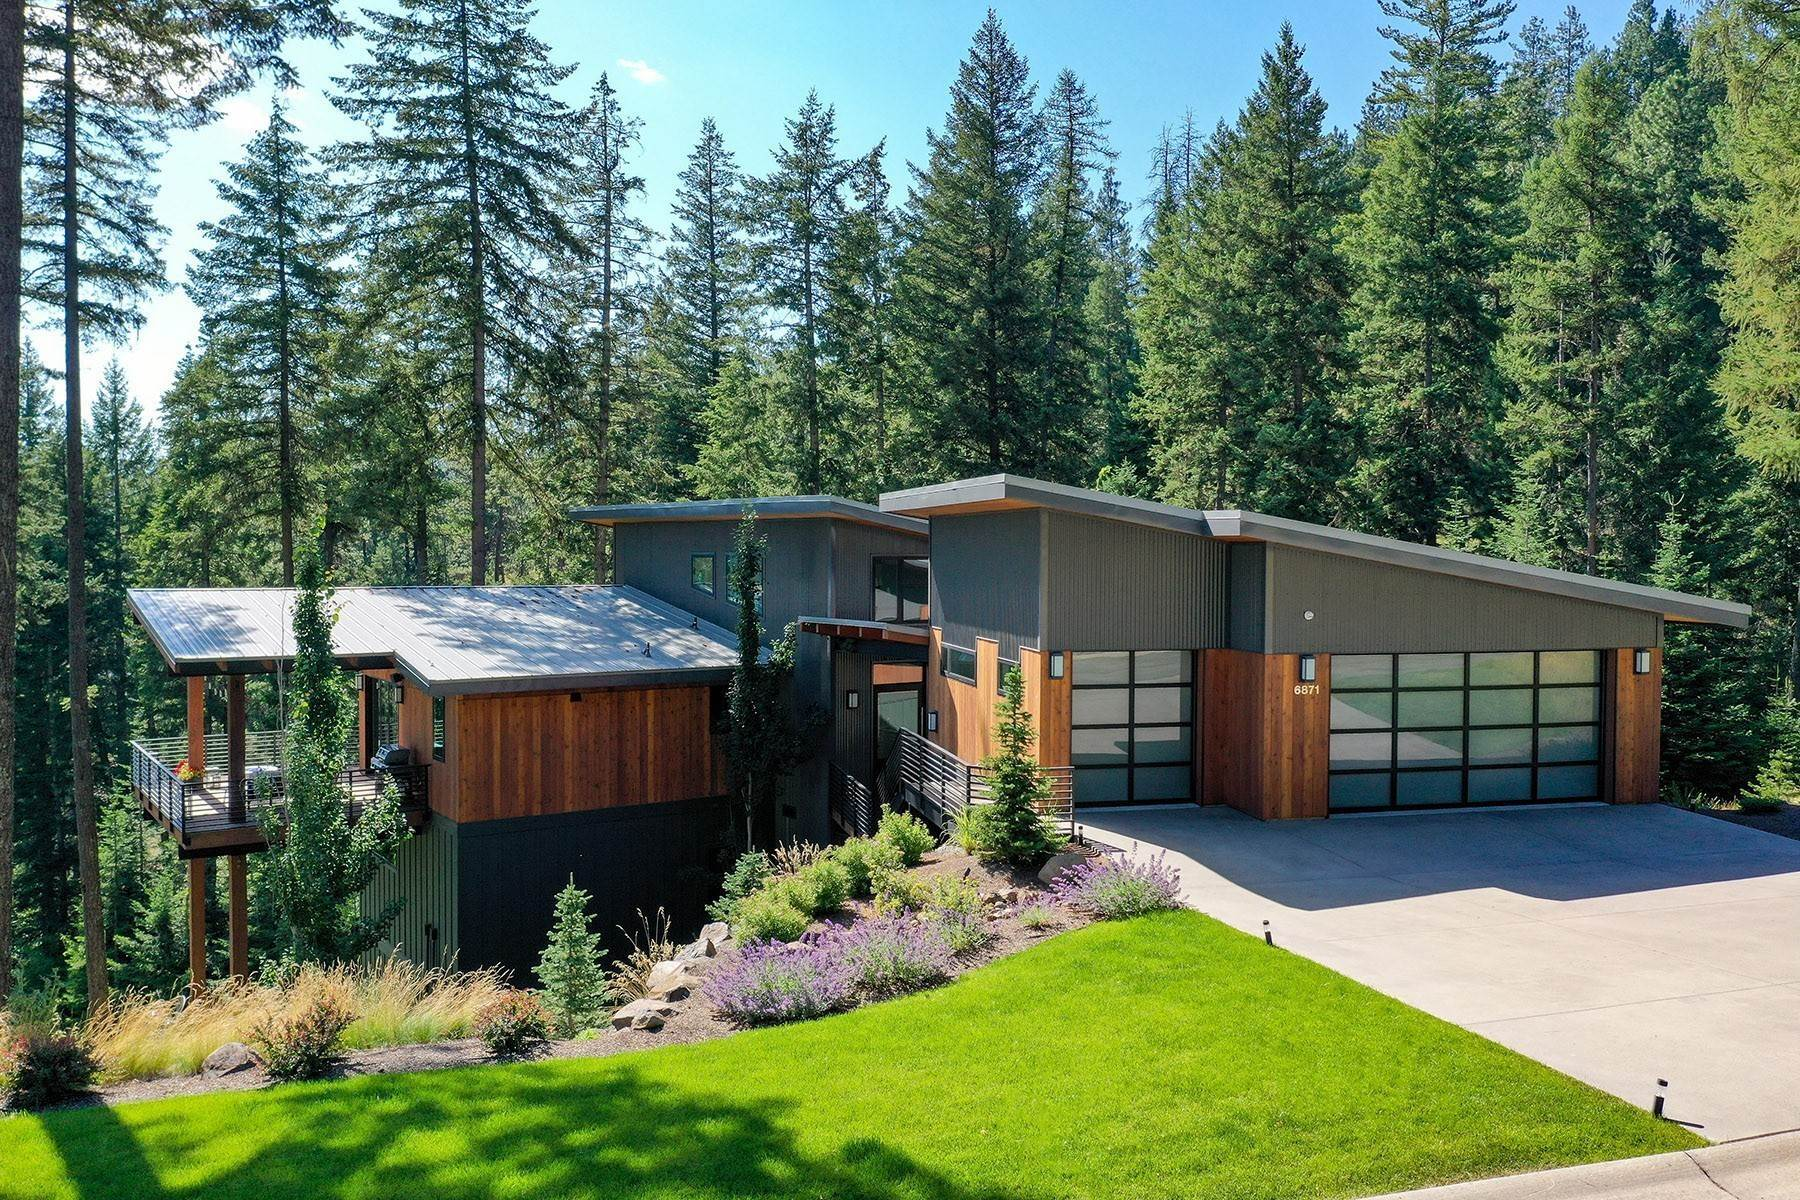 Single Family Homes for Sale at Gorgeous To-Be-Built Lakefront Home 5486 W Mica Shore, Coeur D Alene, Idaho, 83814 United States